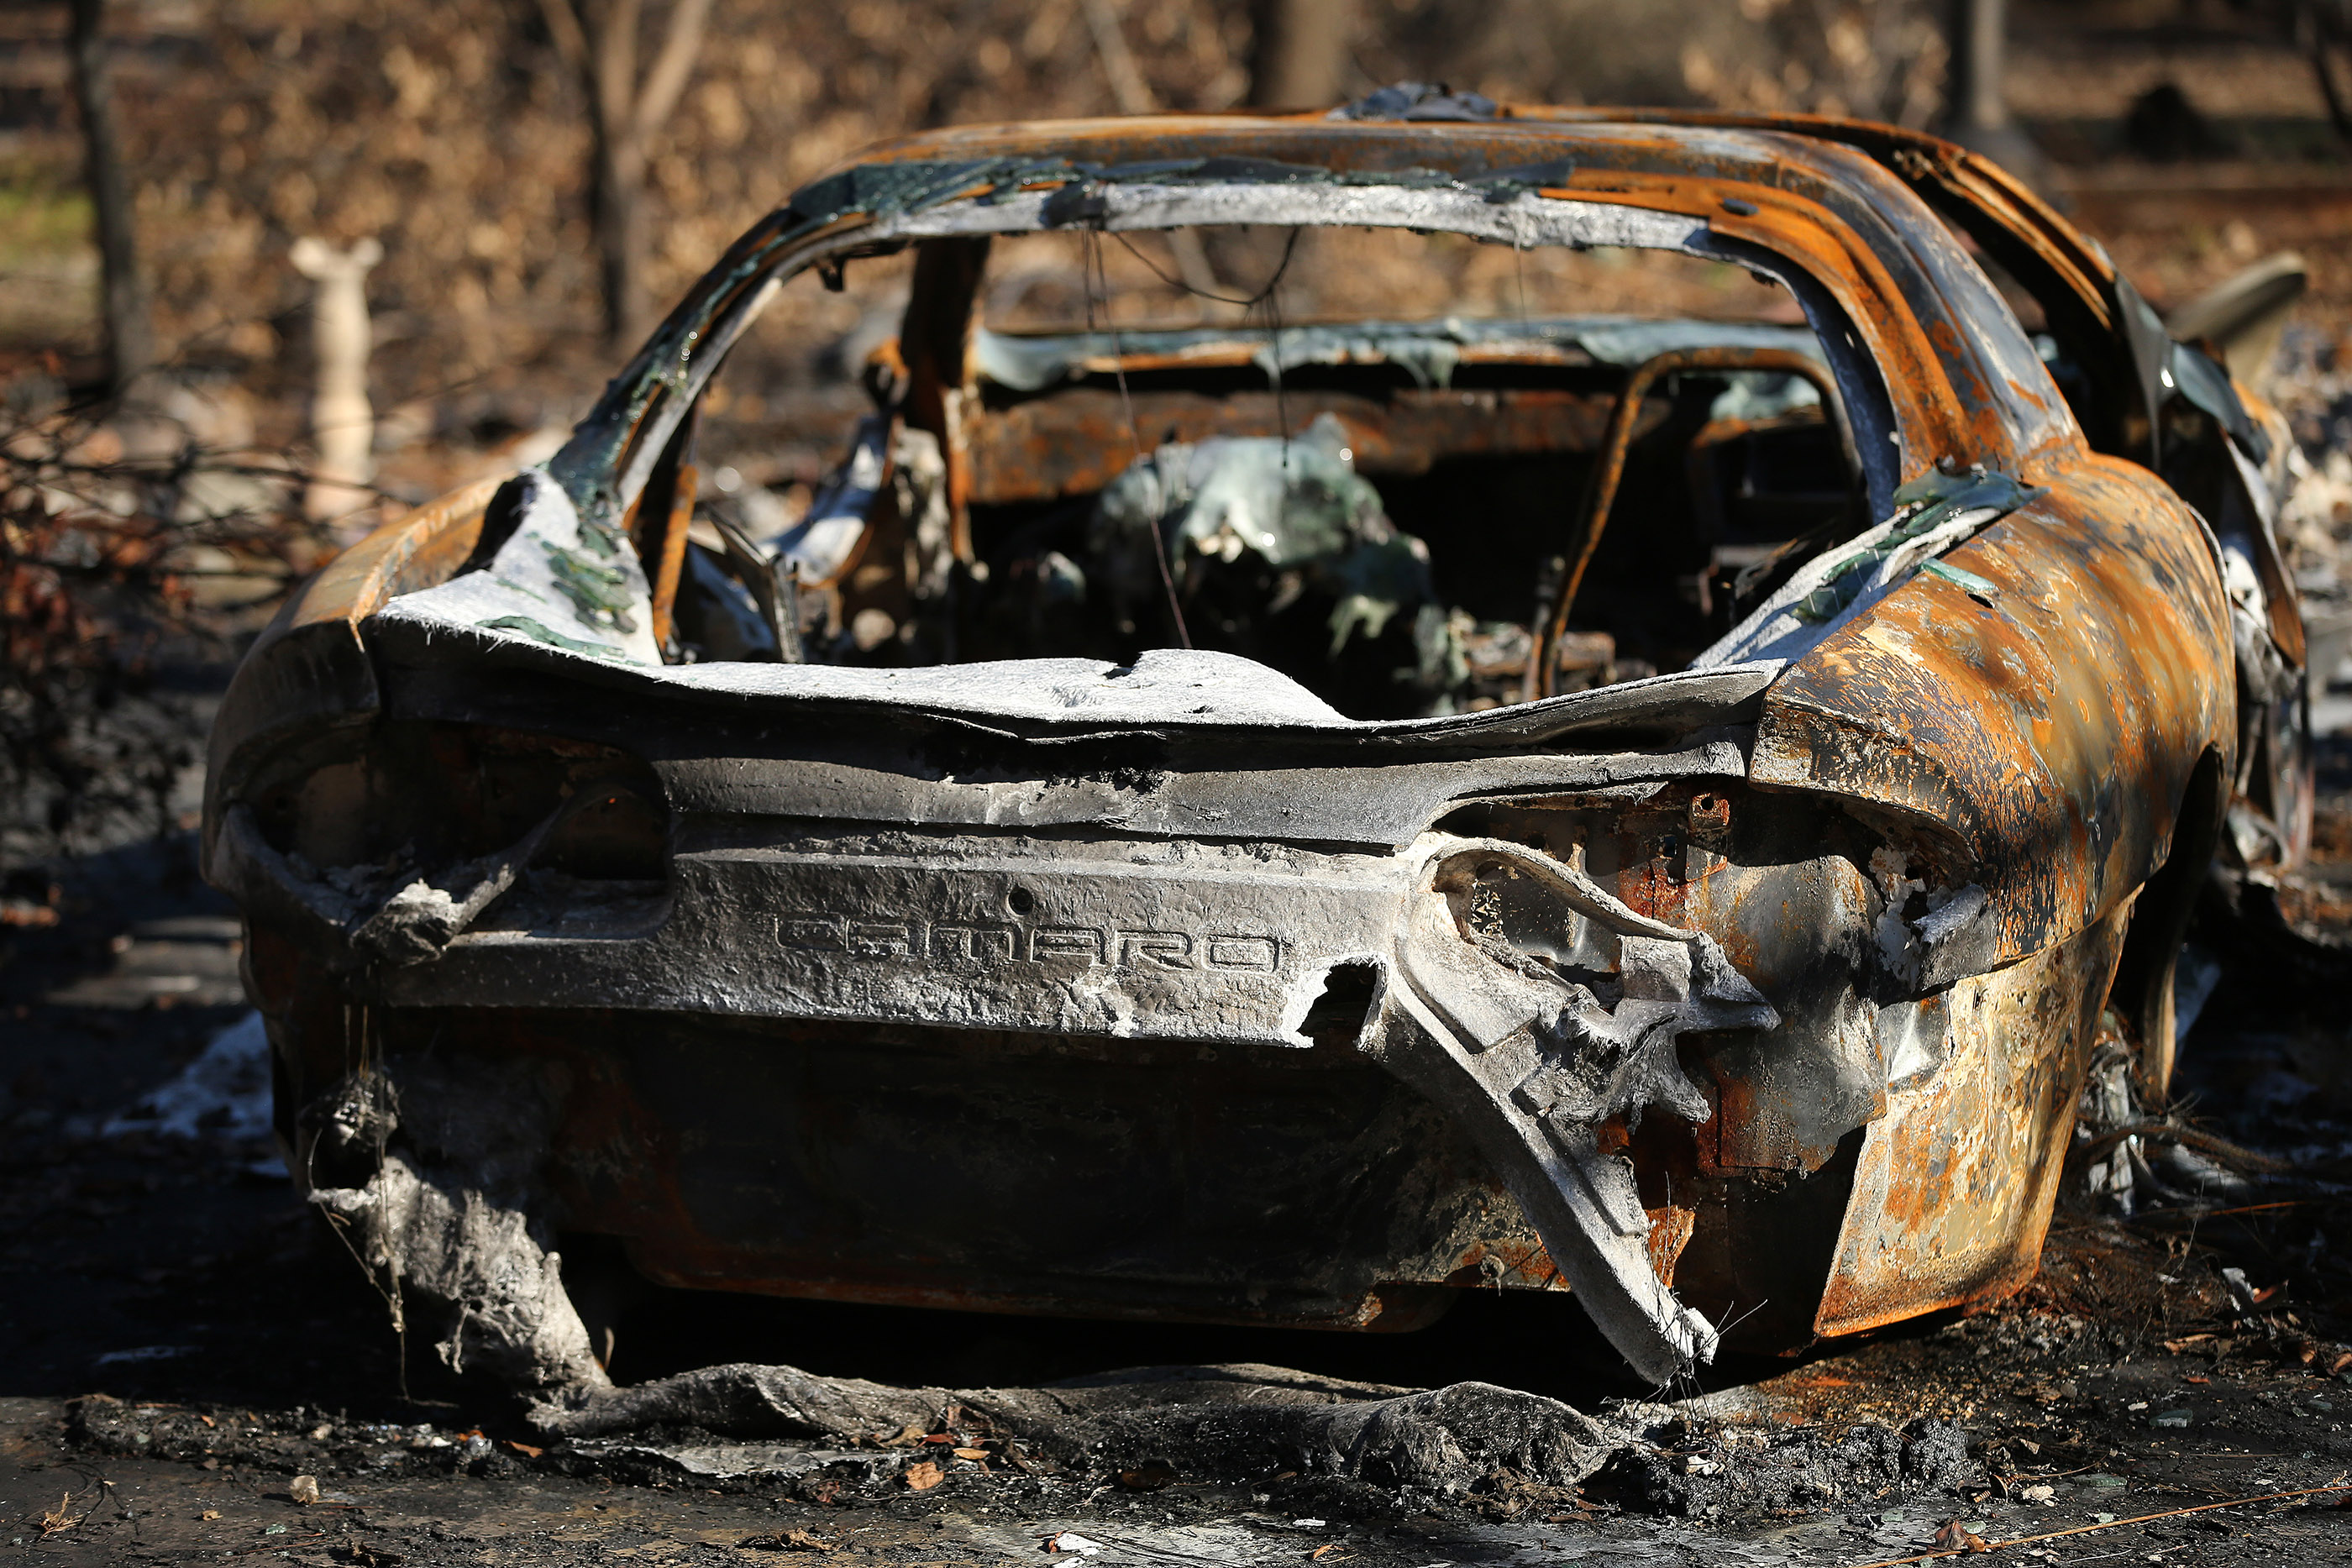 A burned-out Camaro remains on Sunday, Jan. 13, 2019, in Paradise, California, after being destroyed in the Camp Fire.